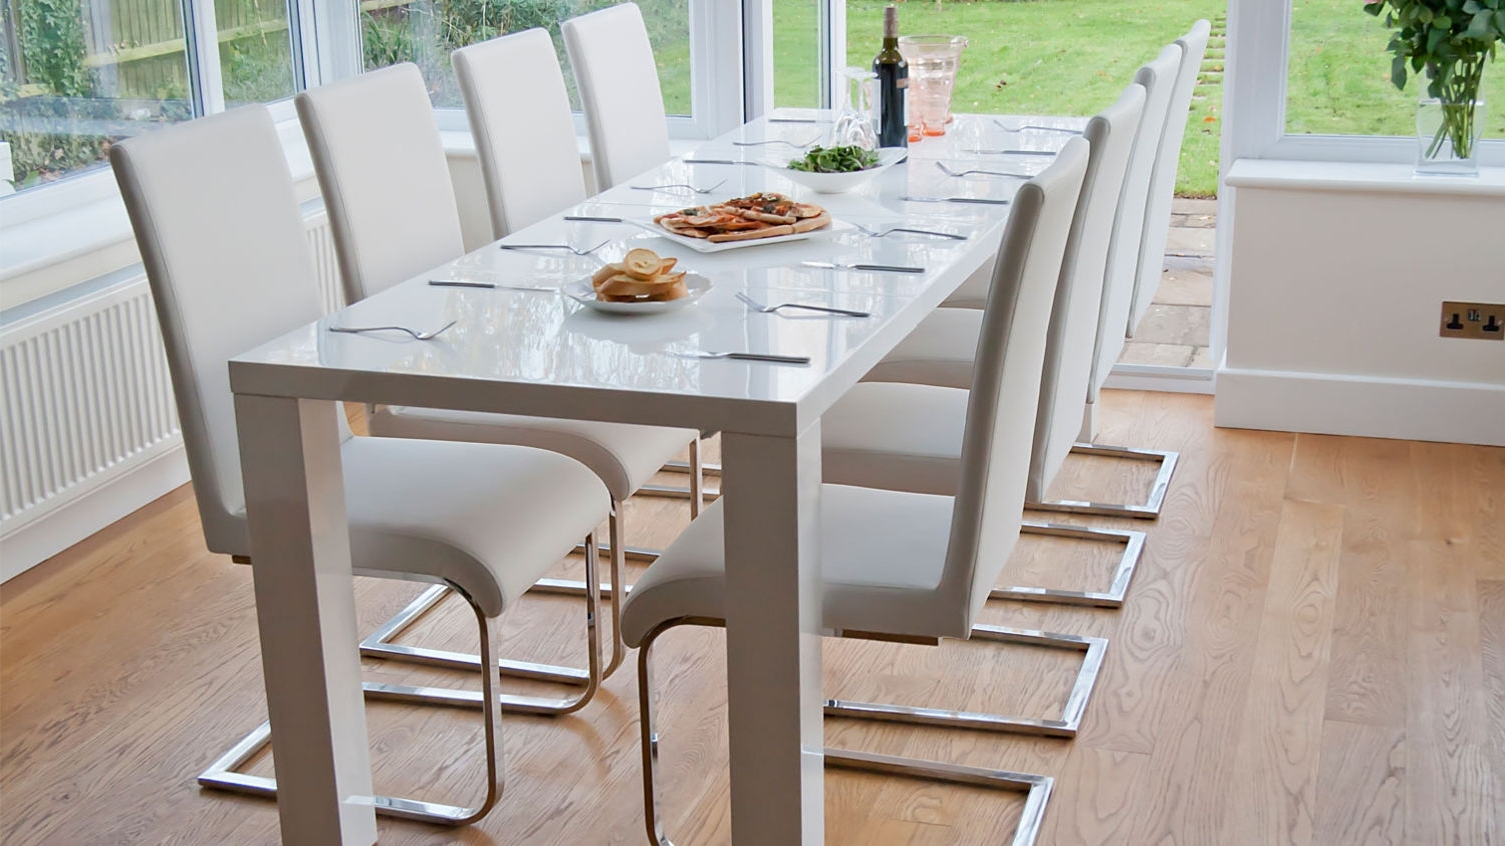 Most Popular Dazzling White Gloss Extendable Dining Table With White Luca Home Inside White Gloss Dining Room Tables (View 9 of 25)